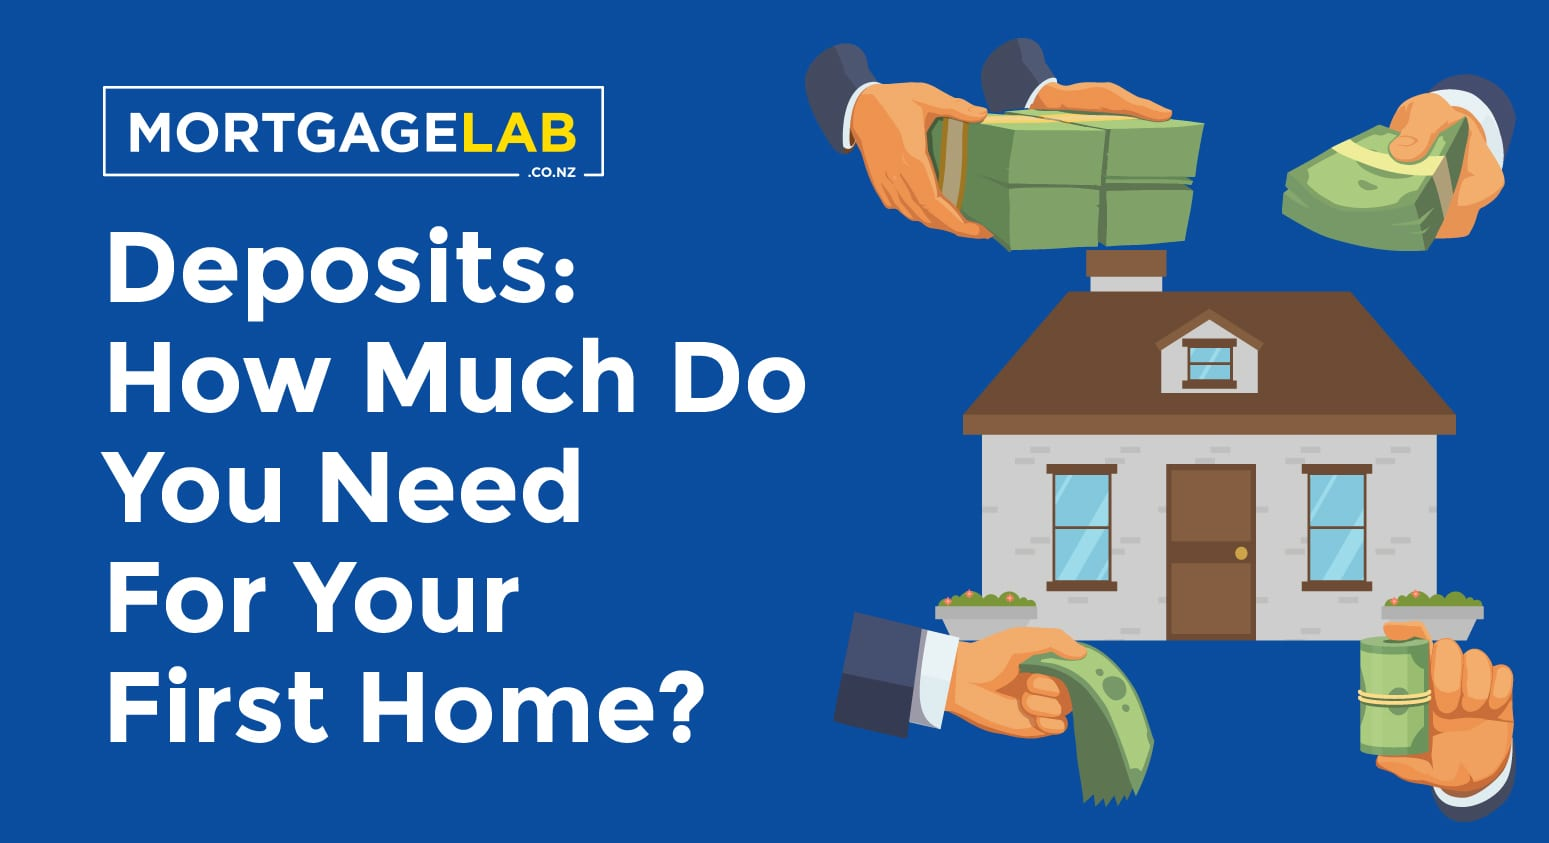 Deposits: How much do you need for your first home?